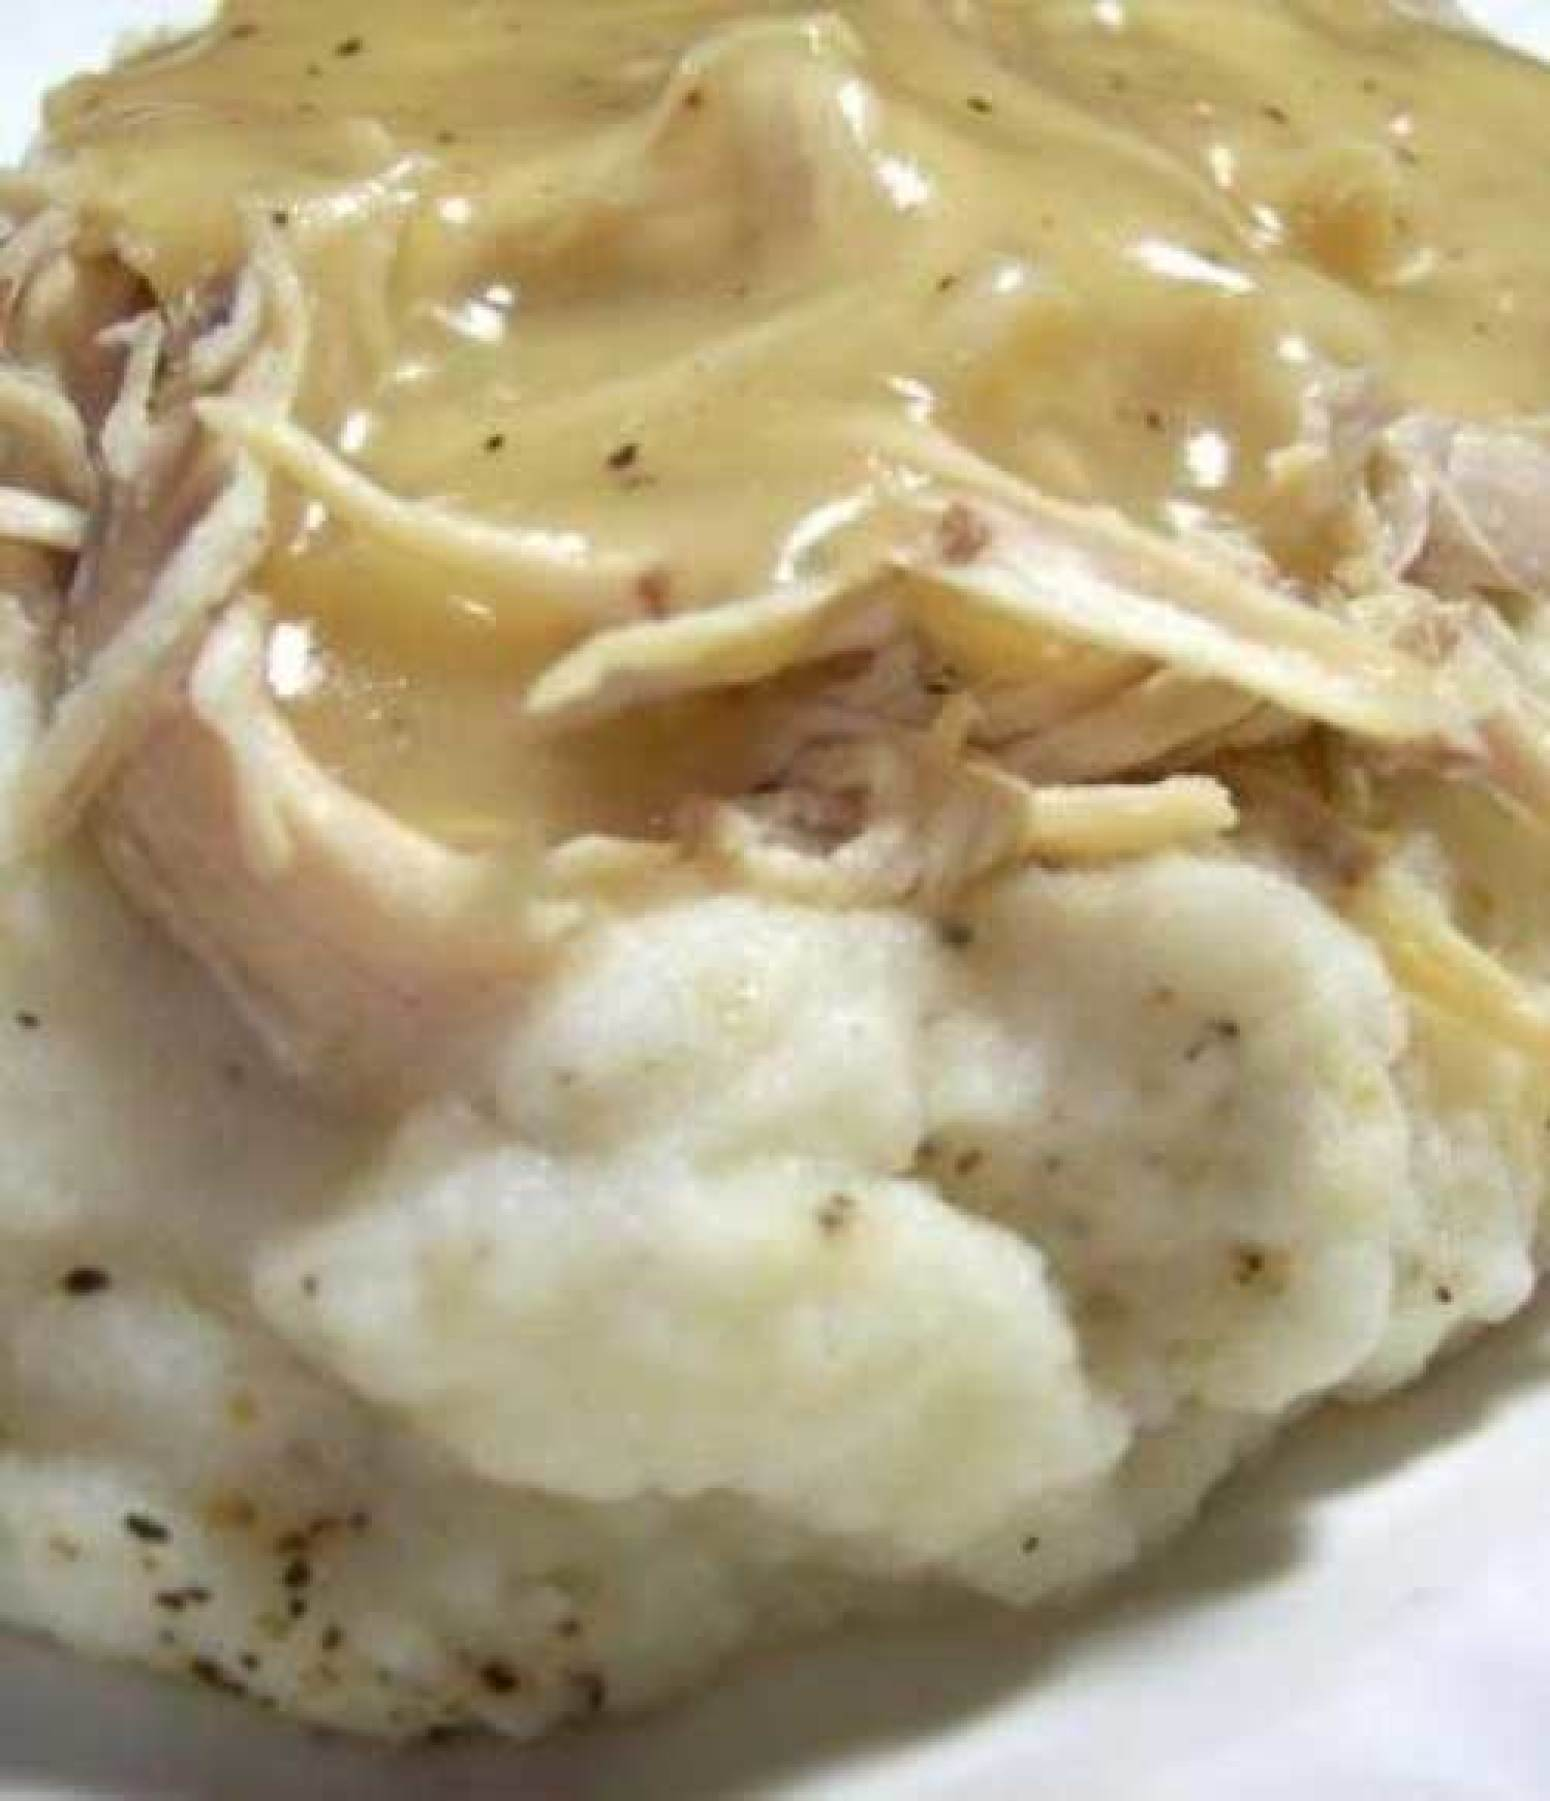 Crockpot Chicken Recipes Easy: Simple Crock Pot Chicken Recipe 2